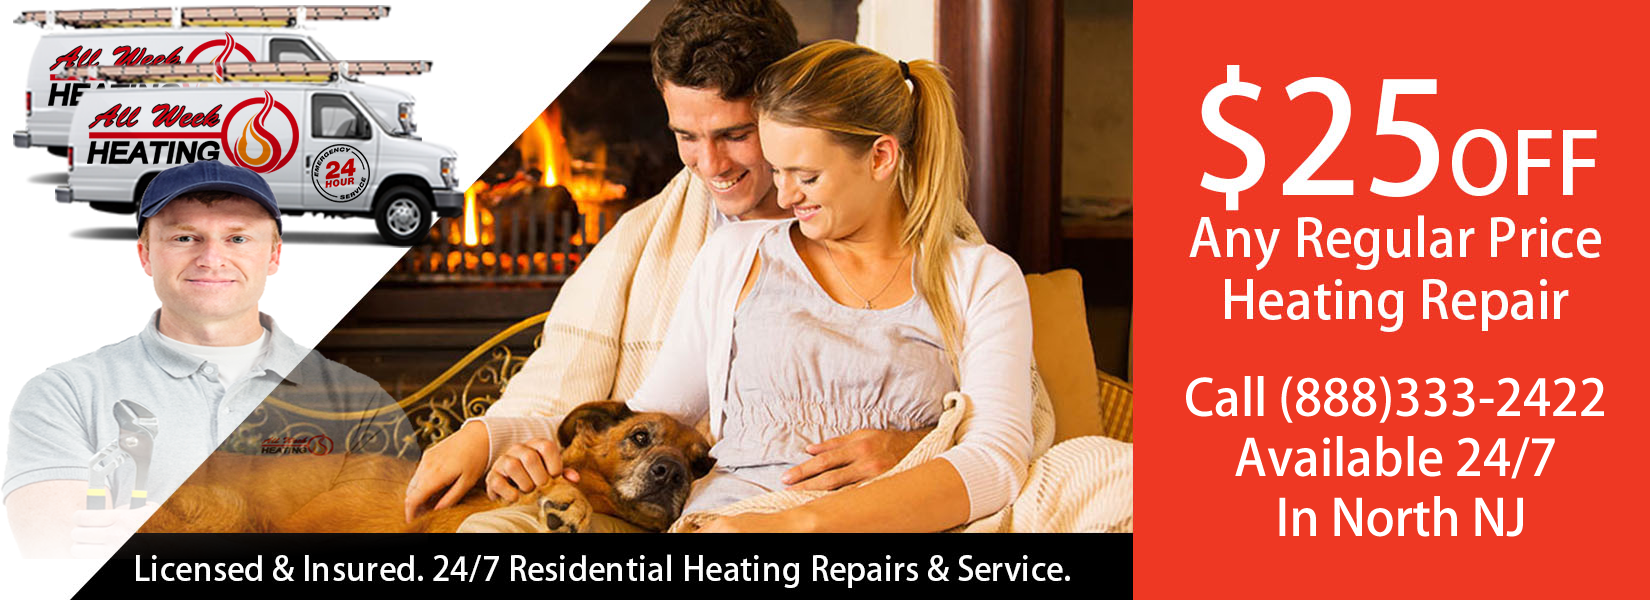 heating repair service nj